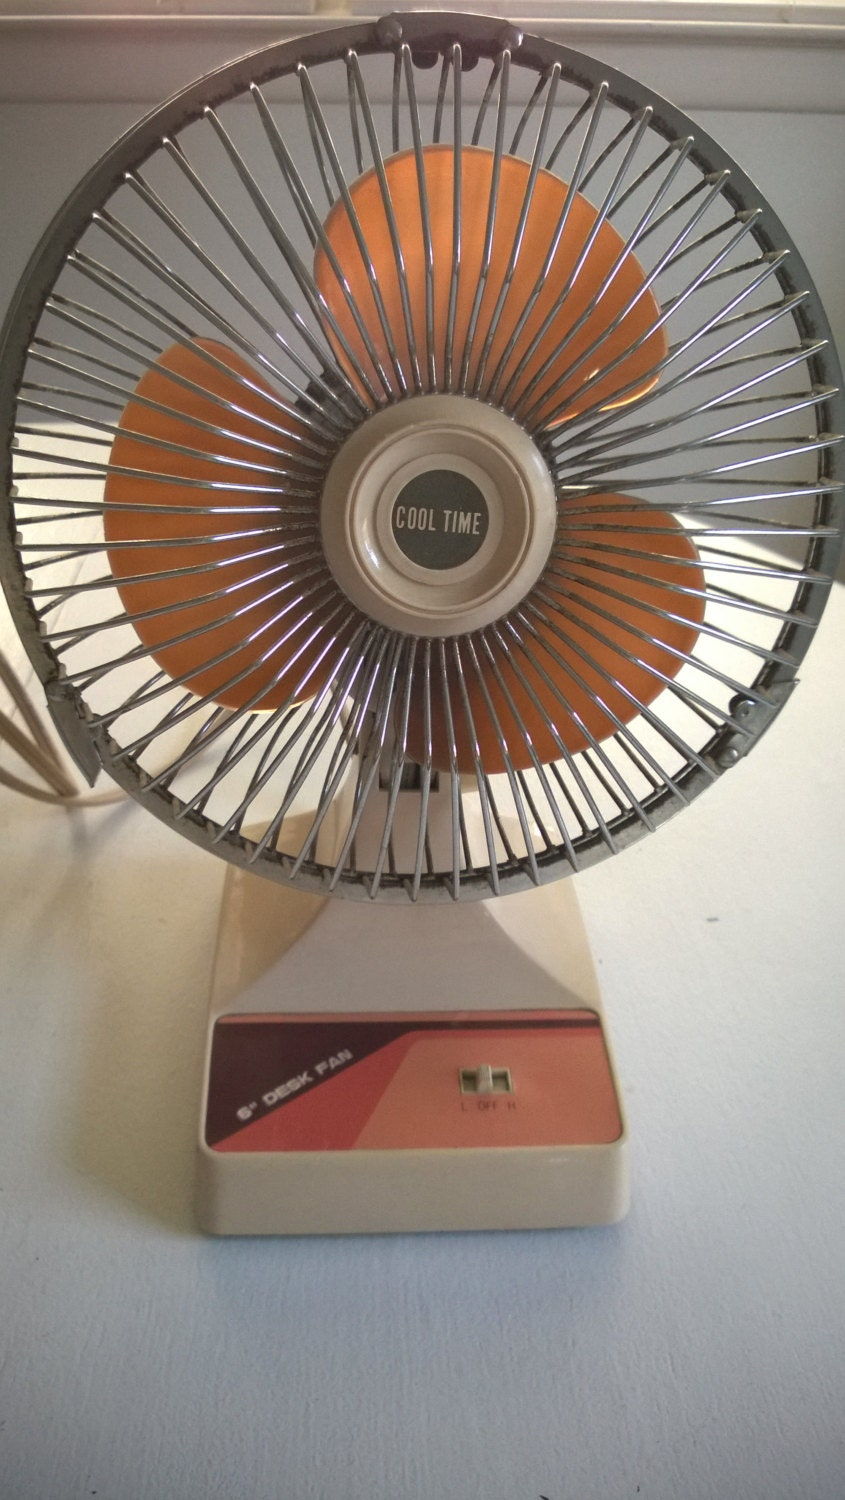 6 Inch Desk Fan : Retro desk fan decor inch